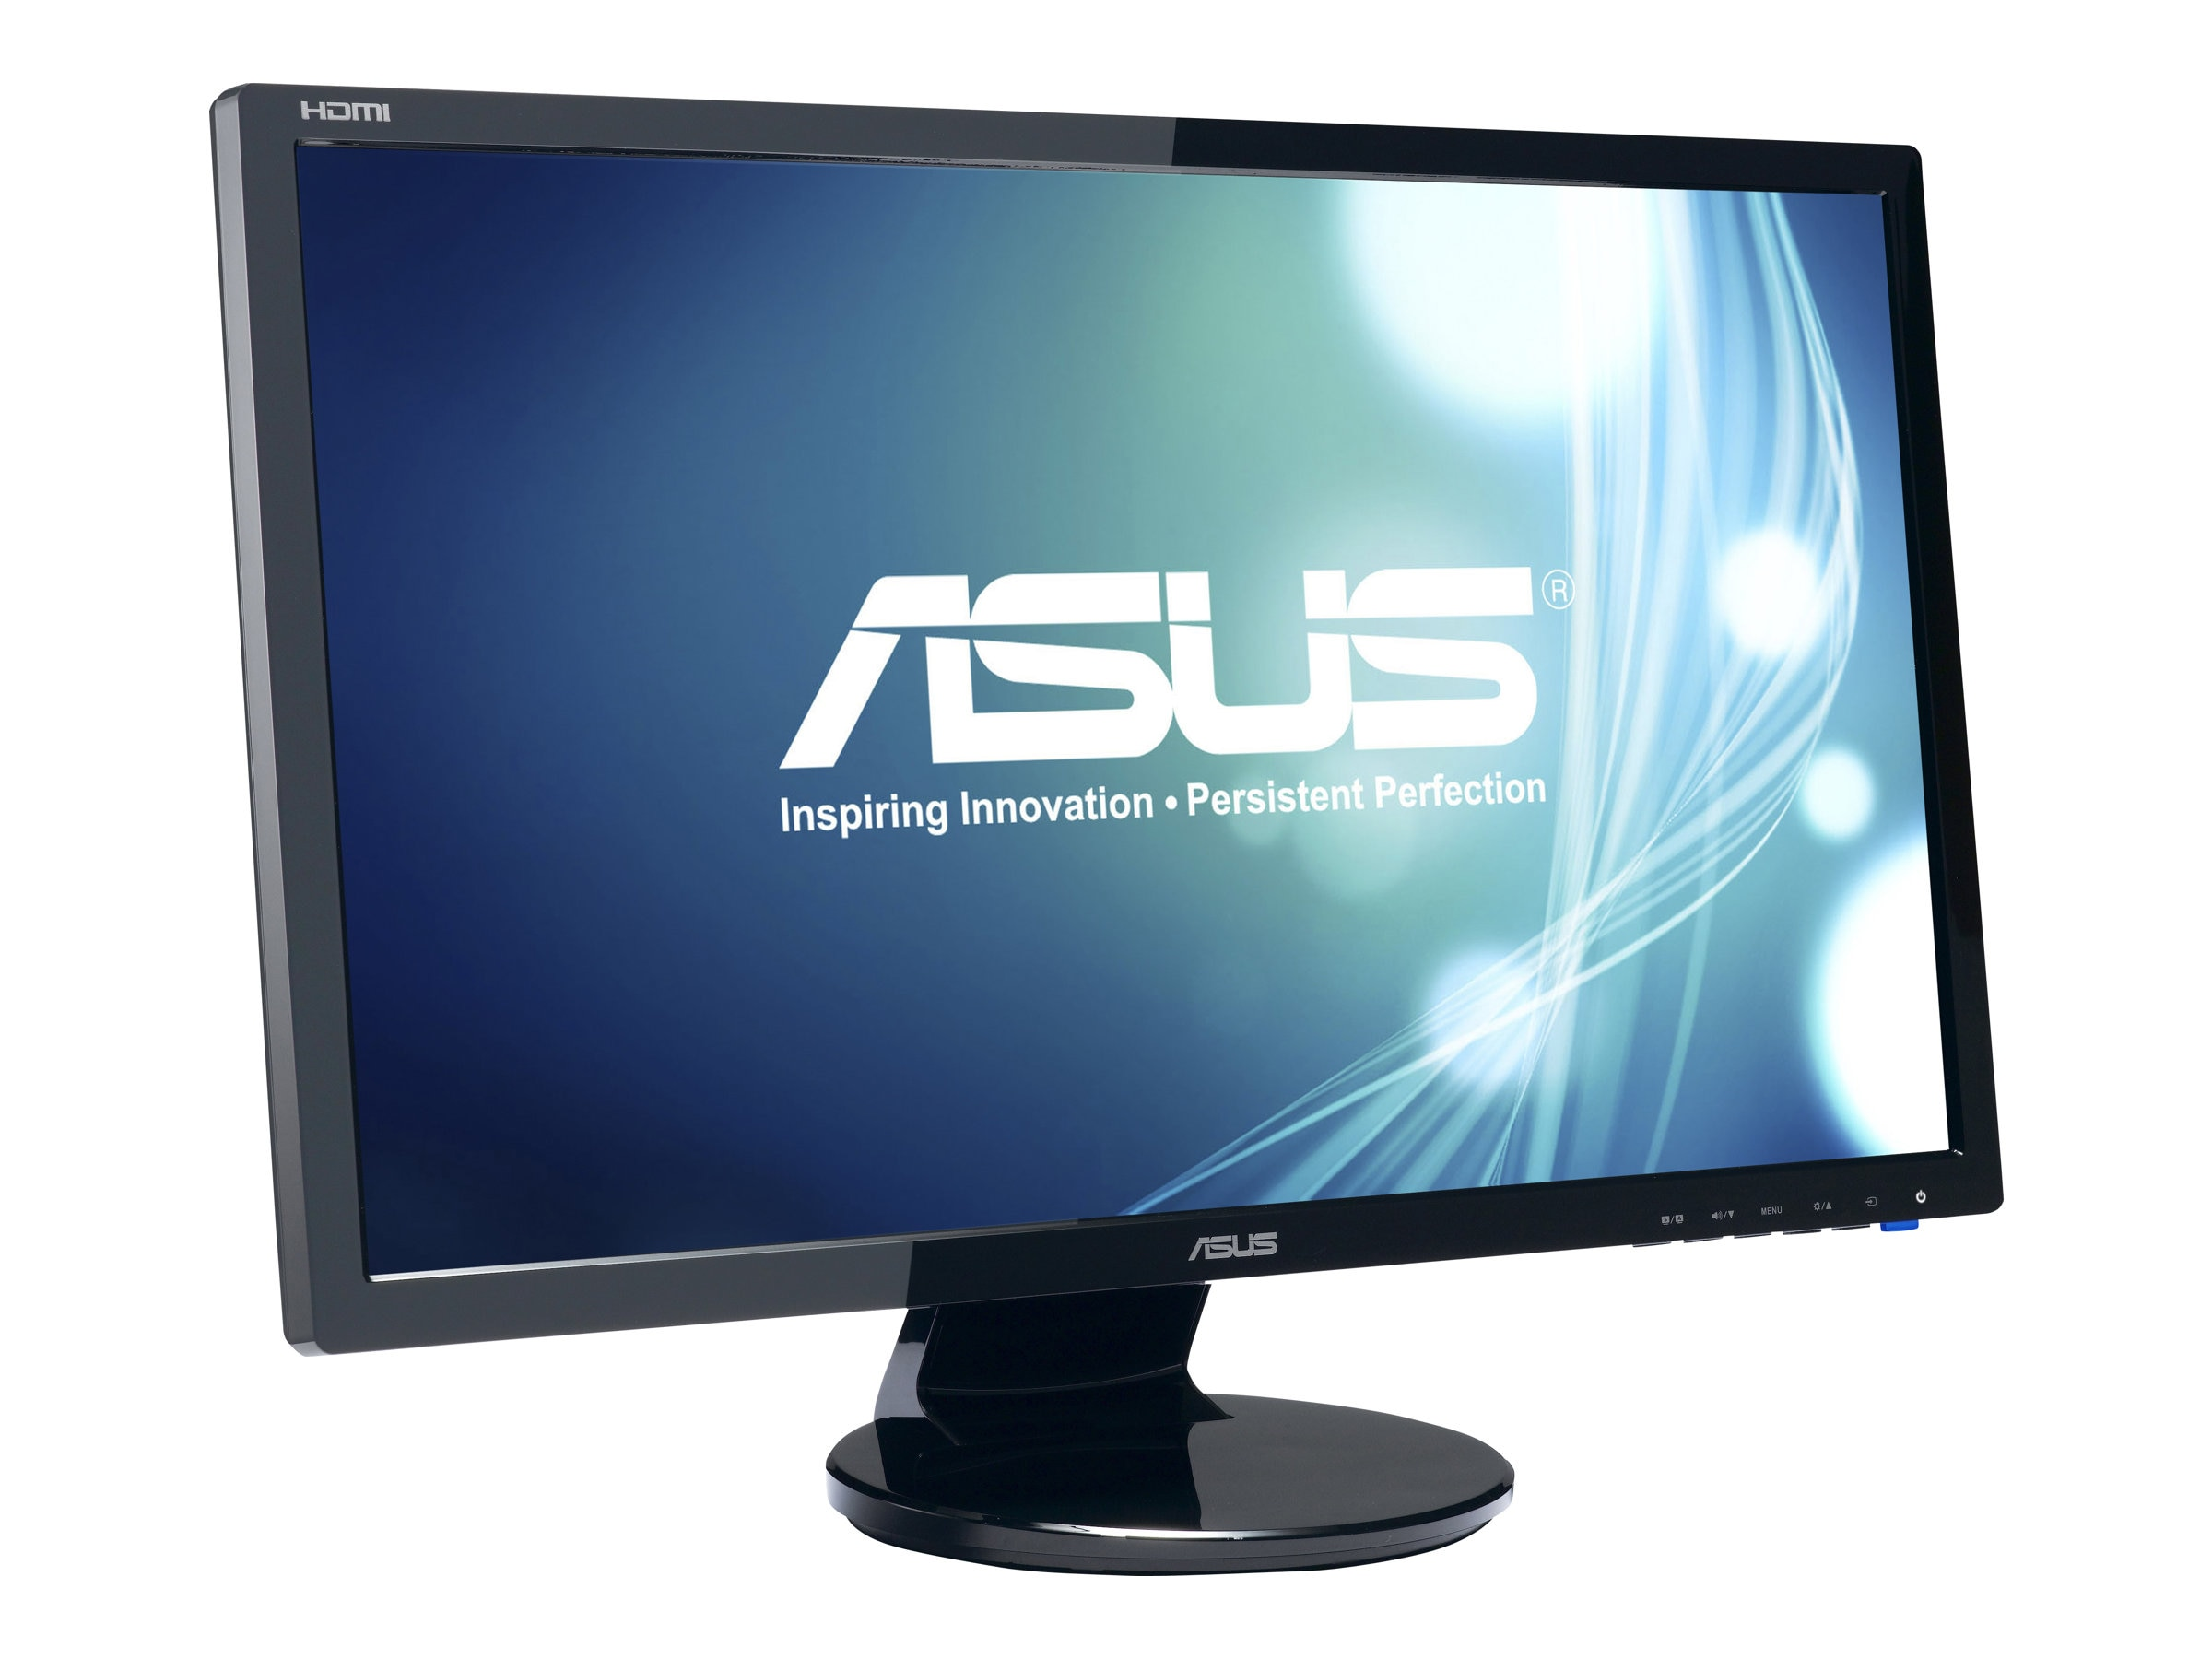 Asus 22 VE228H Full HD LED-LCD Monitor, Black, VE228H